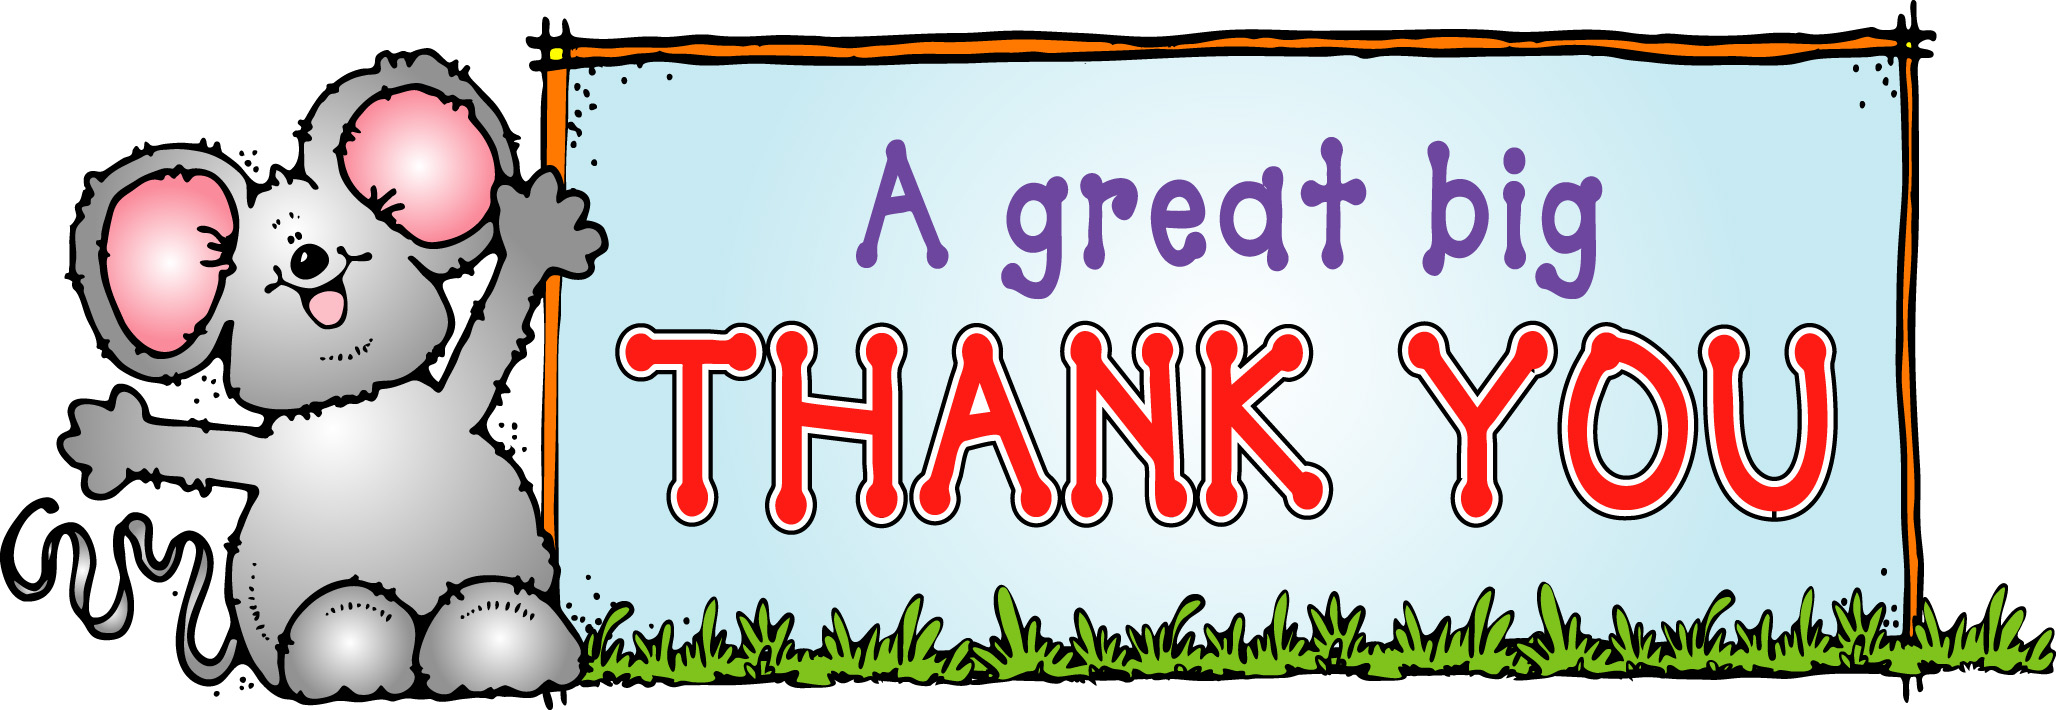 Thank You For Your Help Clip Art Car Tun-Thank You For Your Help Clip Art Car Tuning-14